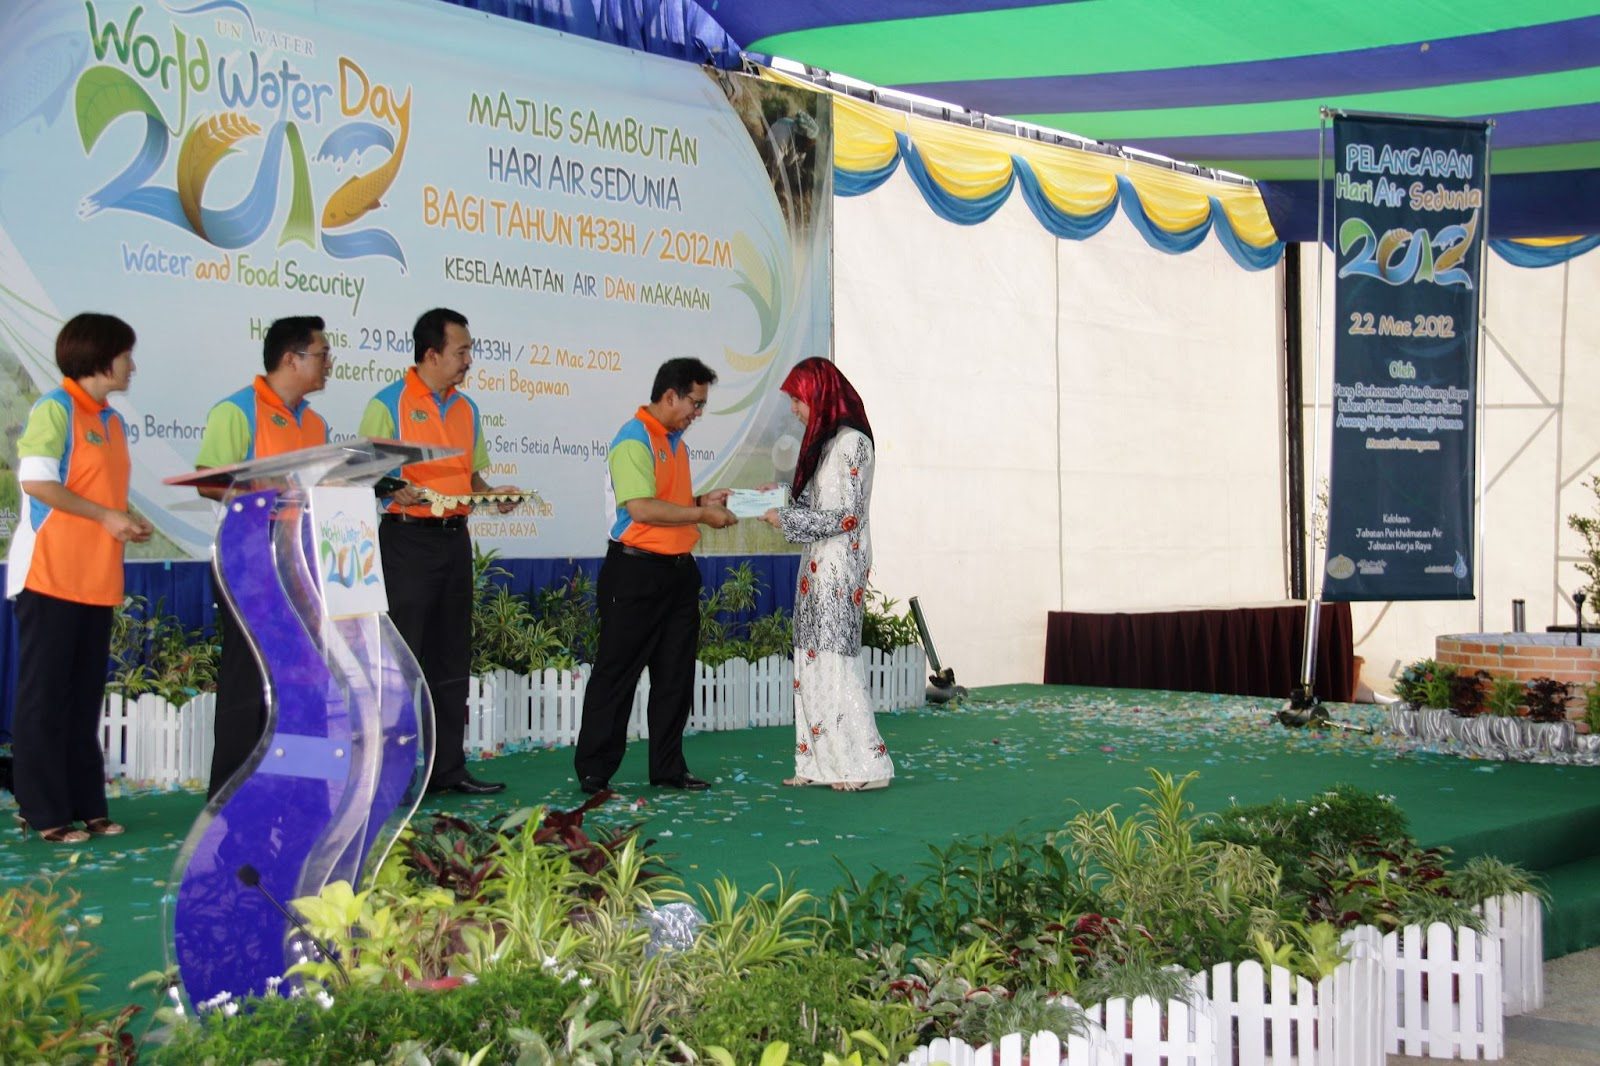 like it or leave it world water day essay writing competition 2012 the prize presentation ceremony was held at the waterfront at bandar a few days ago 600 for first prize winner i d say not bad not bad at all